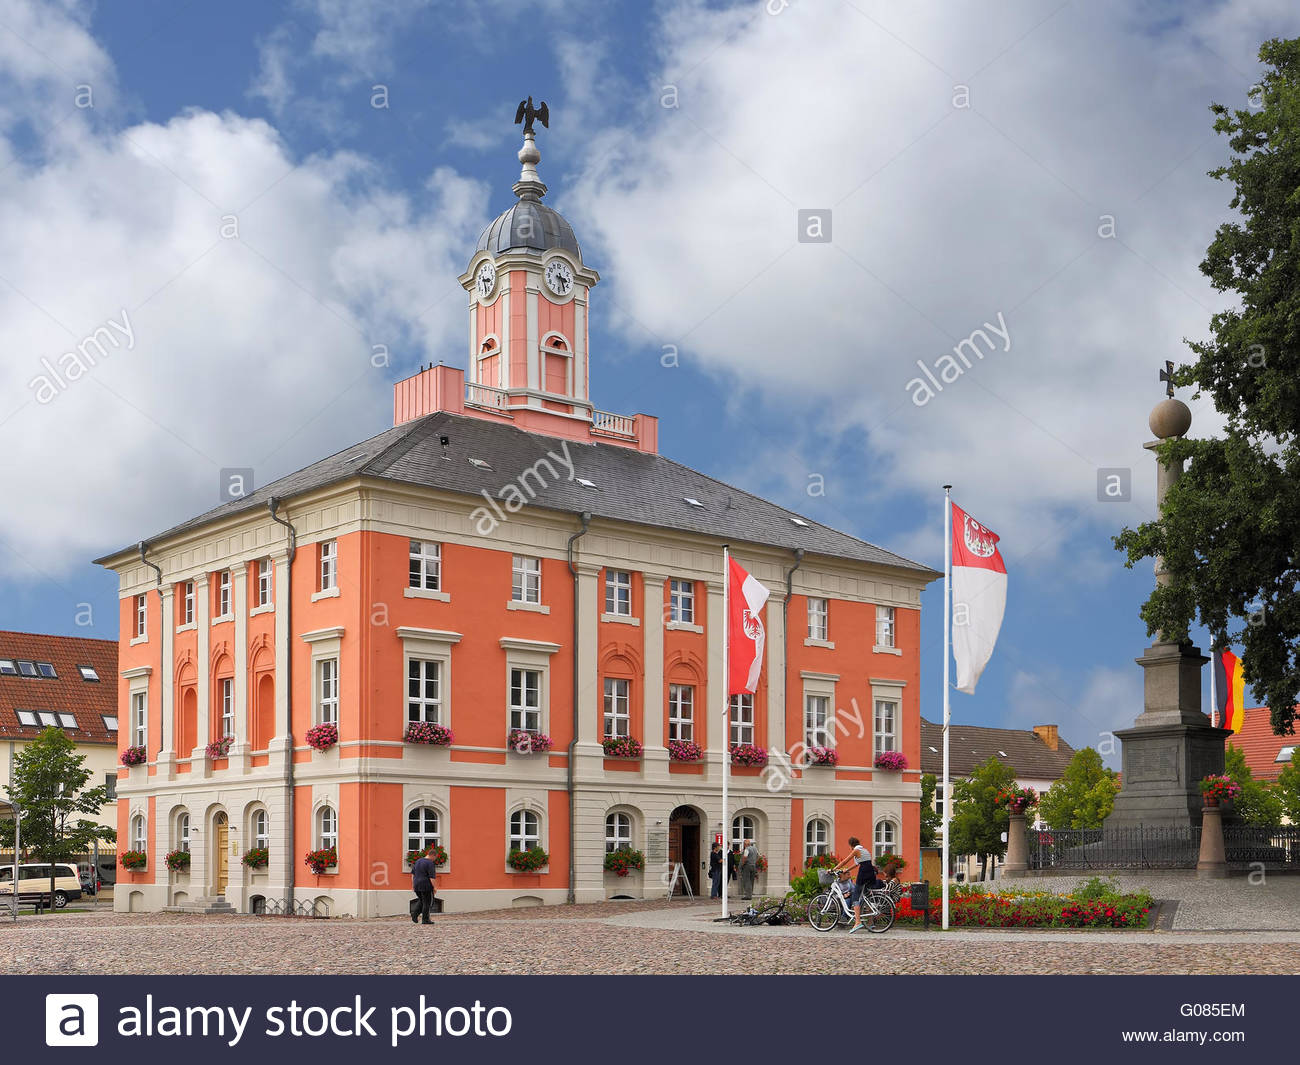 The Baroque town hall of Templin in the Uckermark - Stock Image